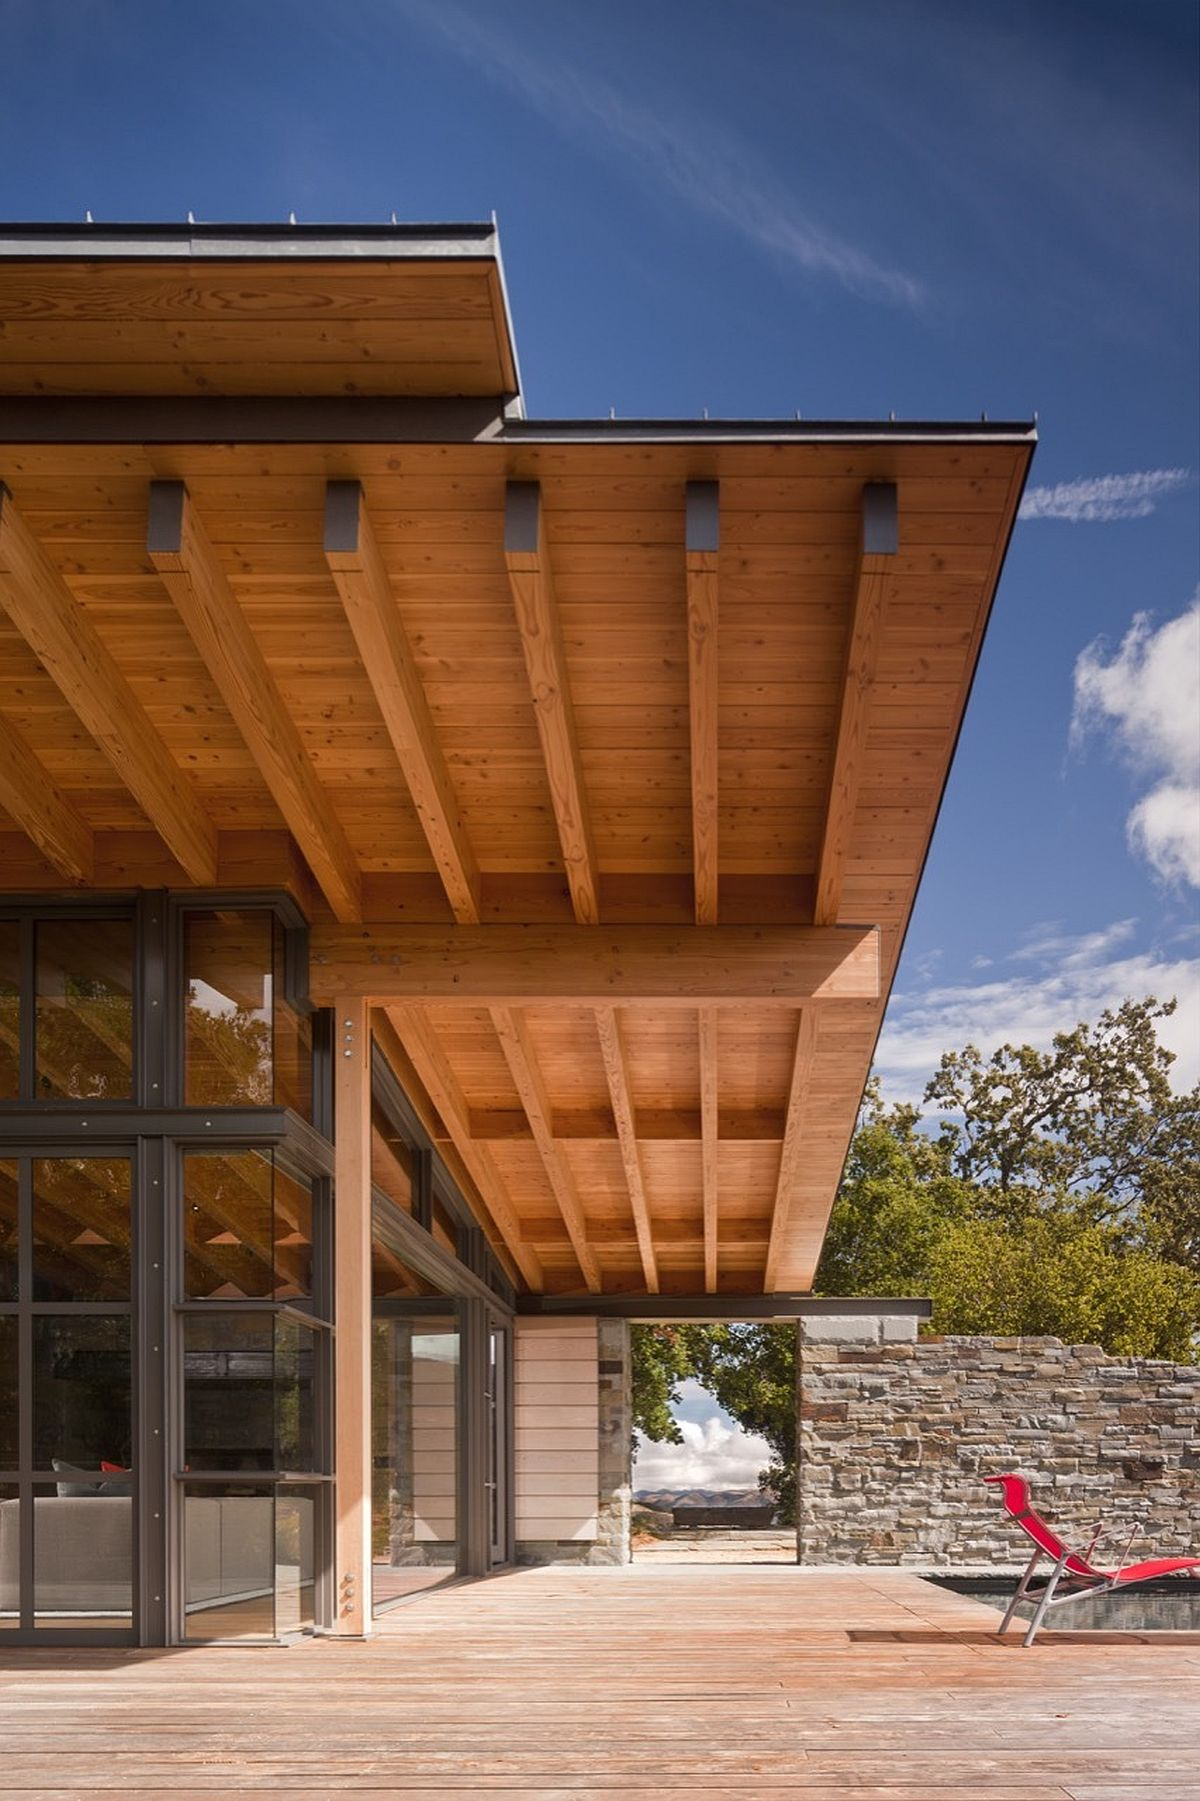 Wooden overhang offers natural shade to those on the deck